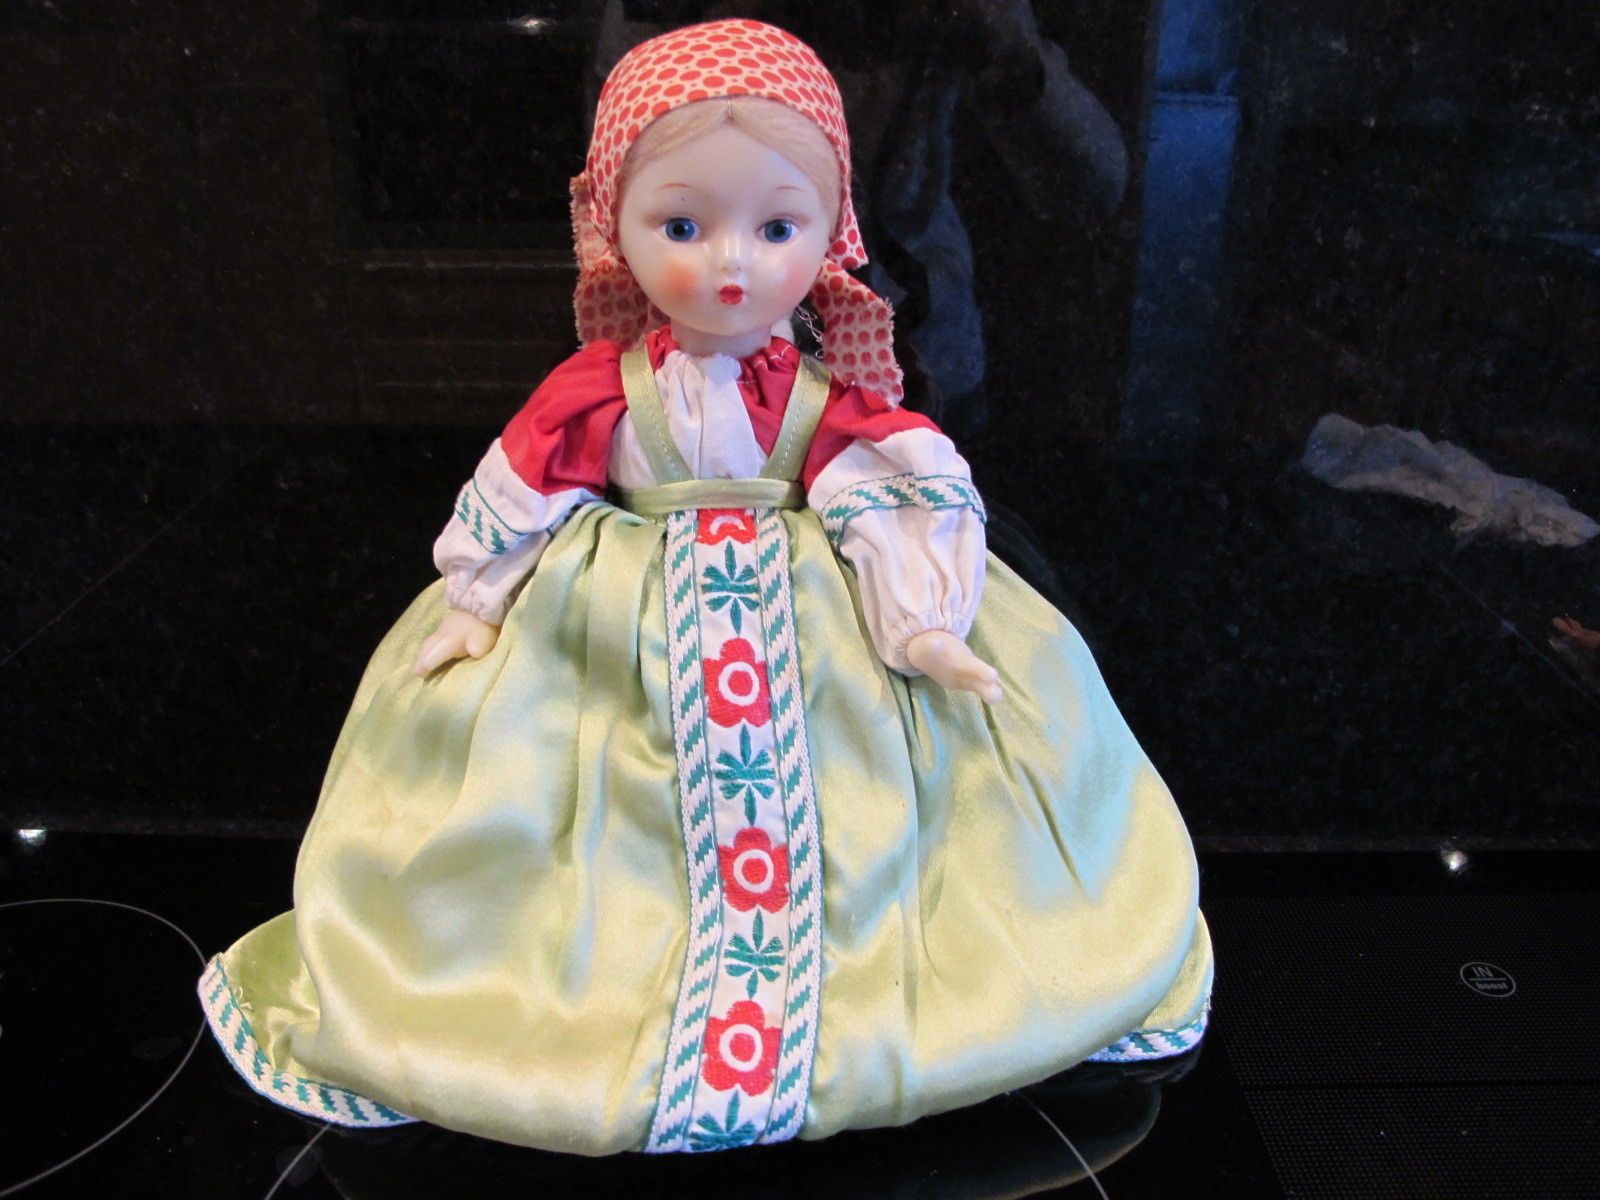 Russian Ussr Vintage Berioska Tea Cosy Doll - 999+47 Listed